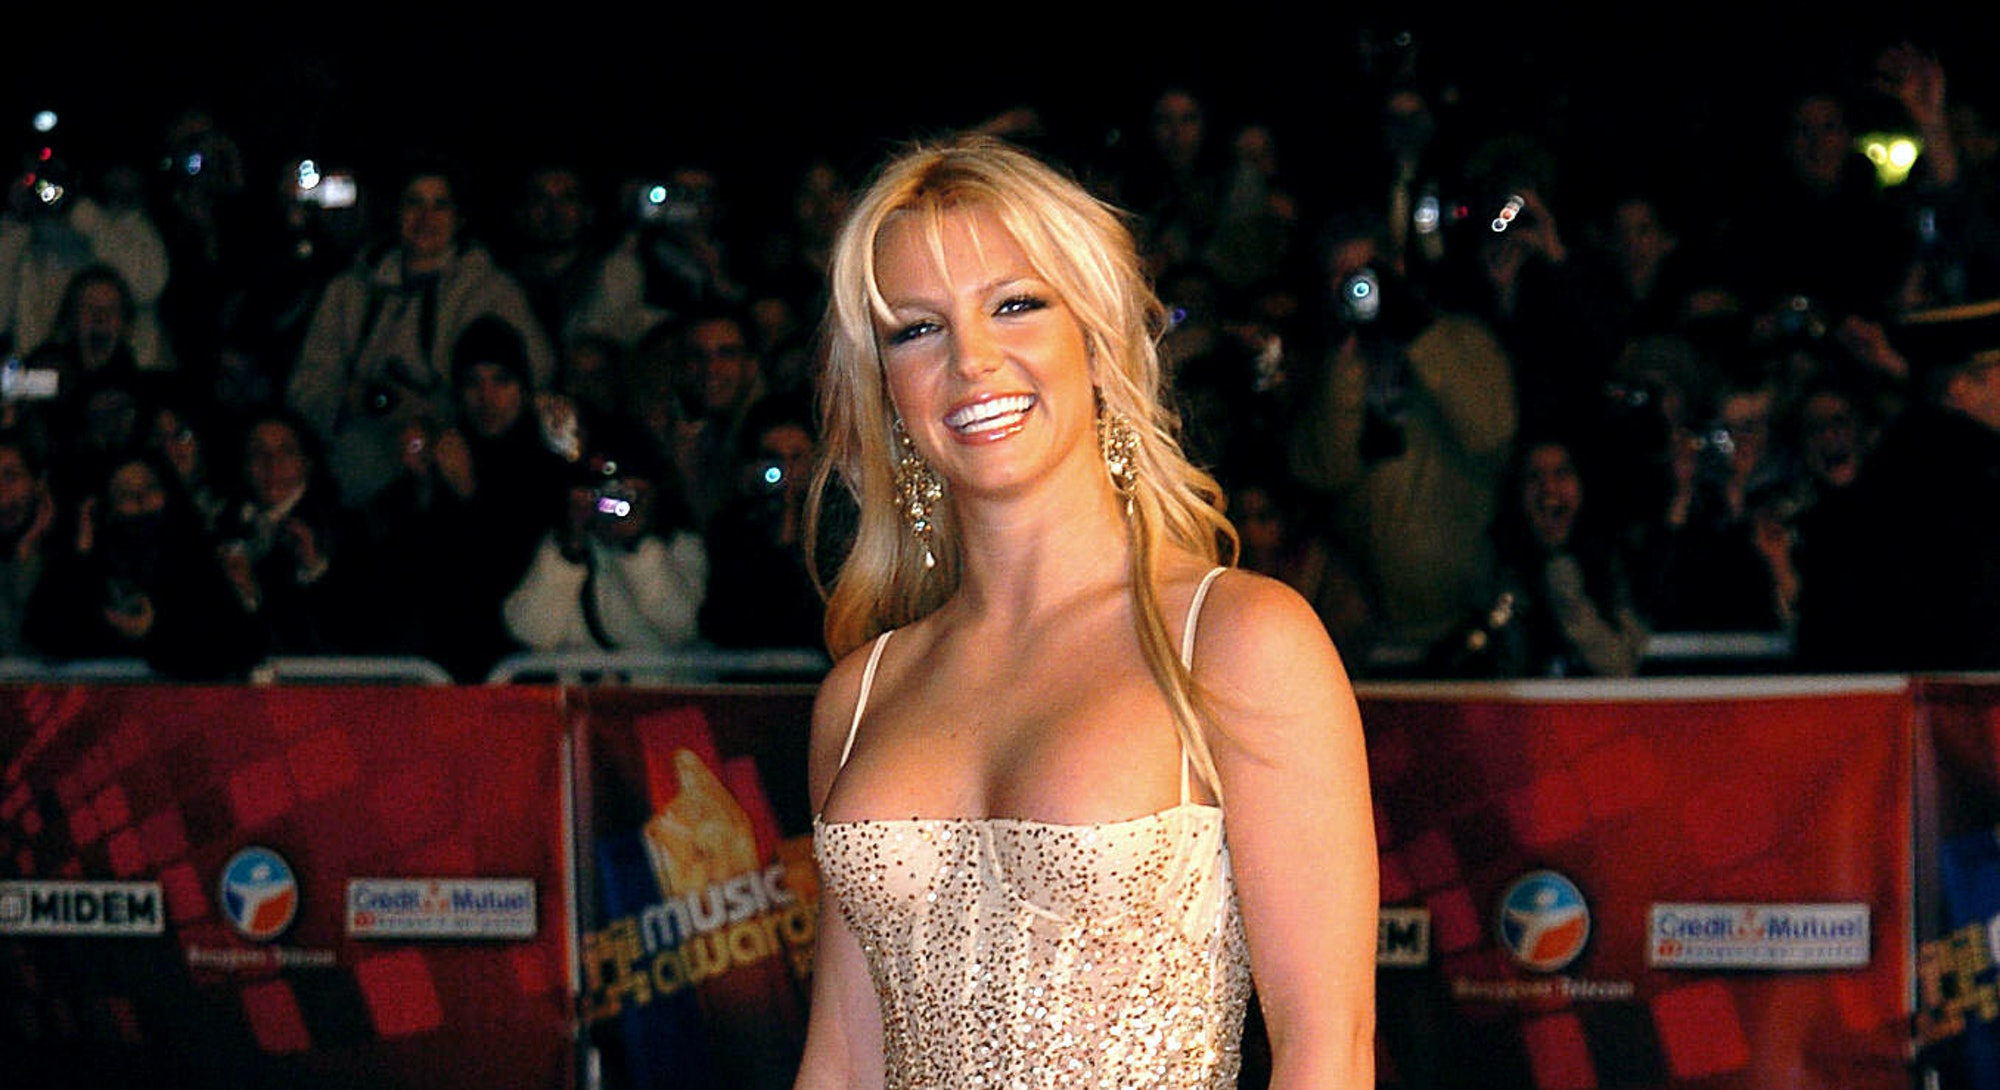 Britney Spears at the 2004 NRJ Awards.